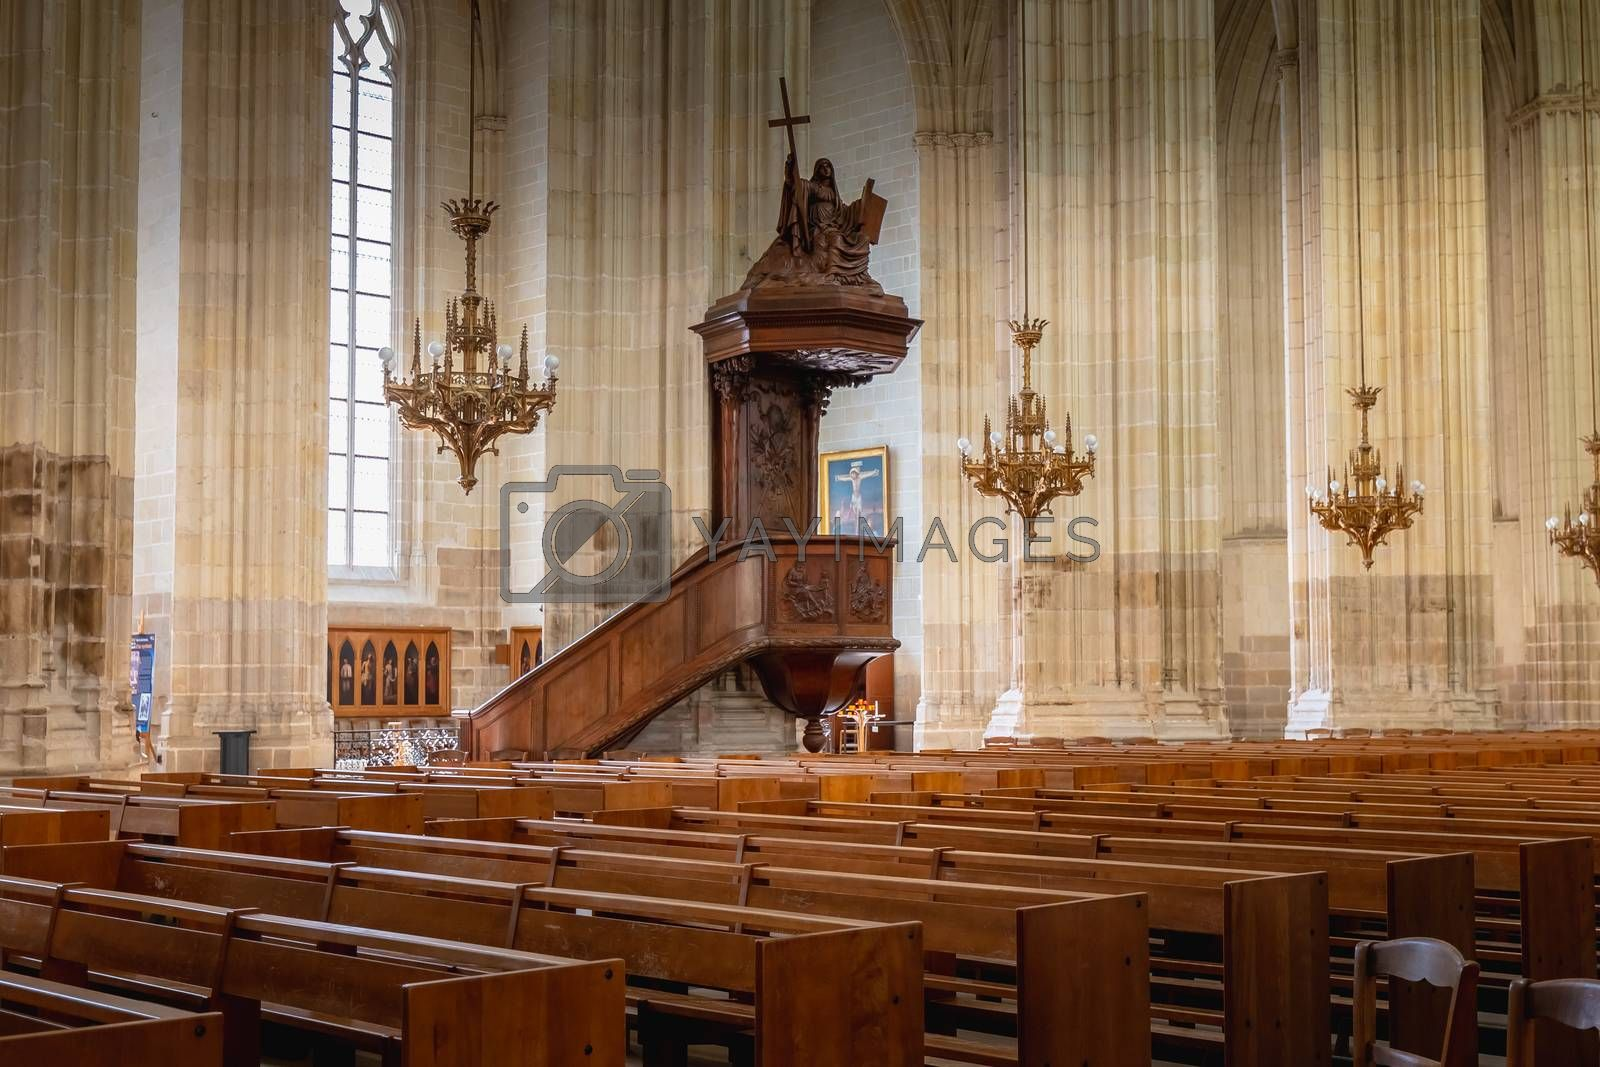 Nantes, France - September 29, 2018: Architecture detail of the interior of Saint Pierre Cathedral in Nantes on a summer day